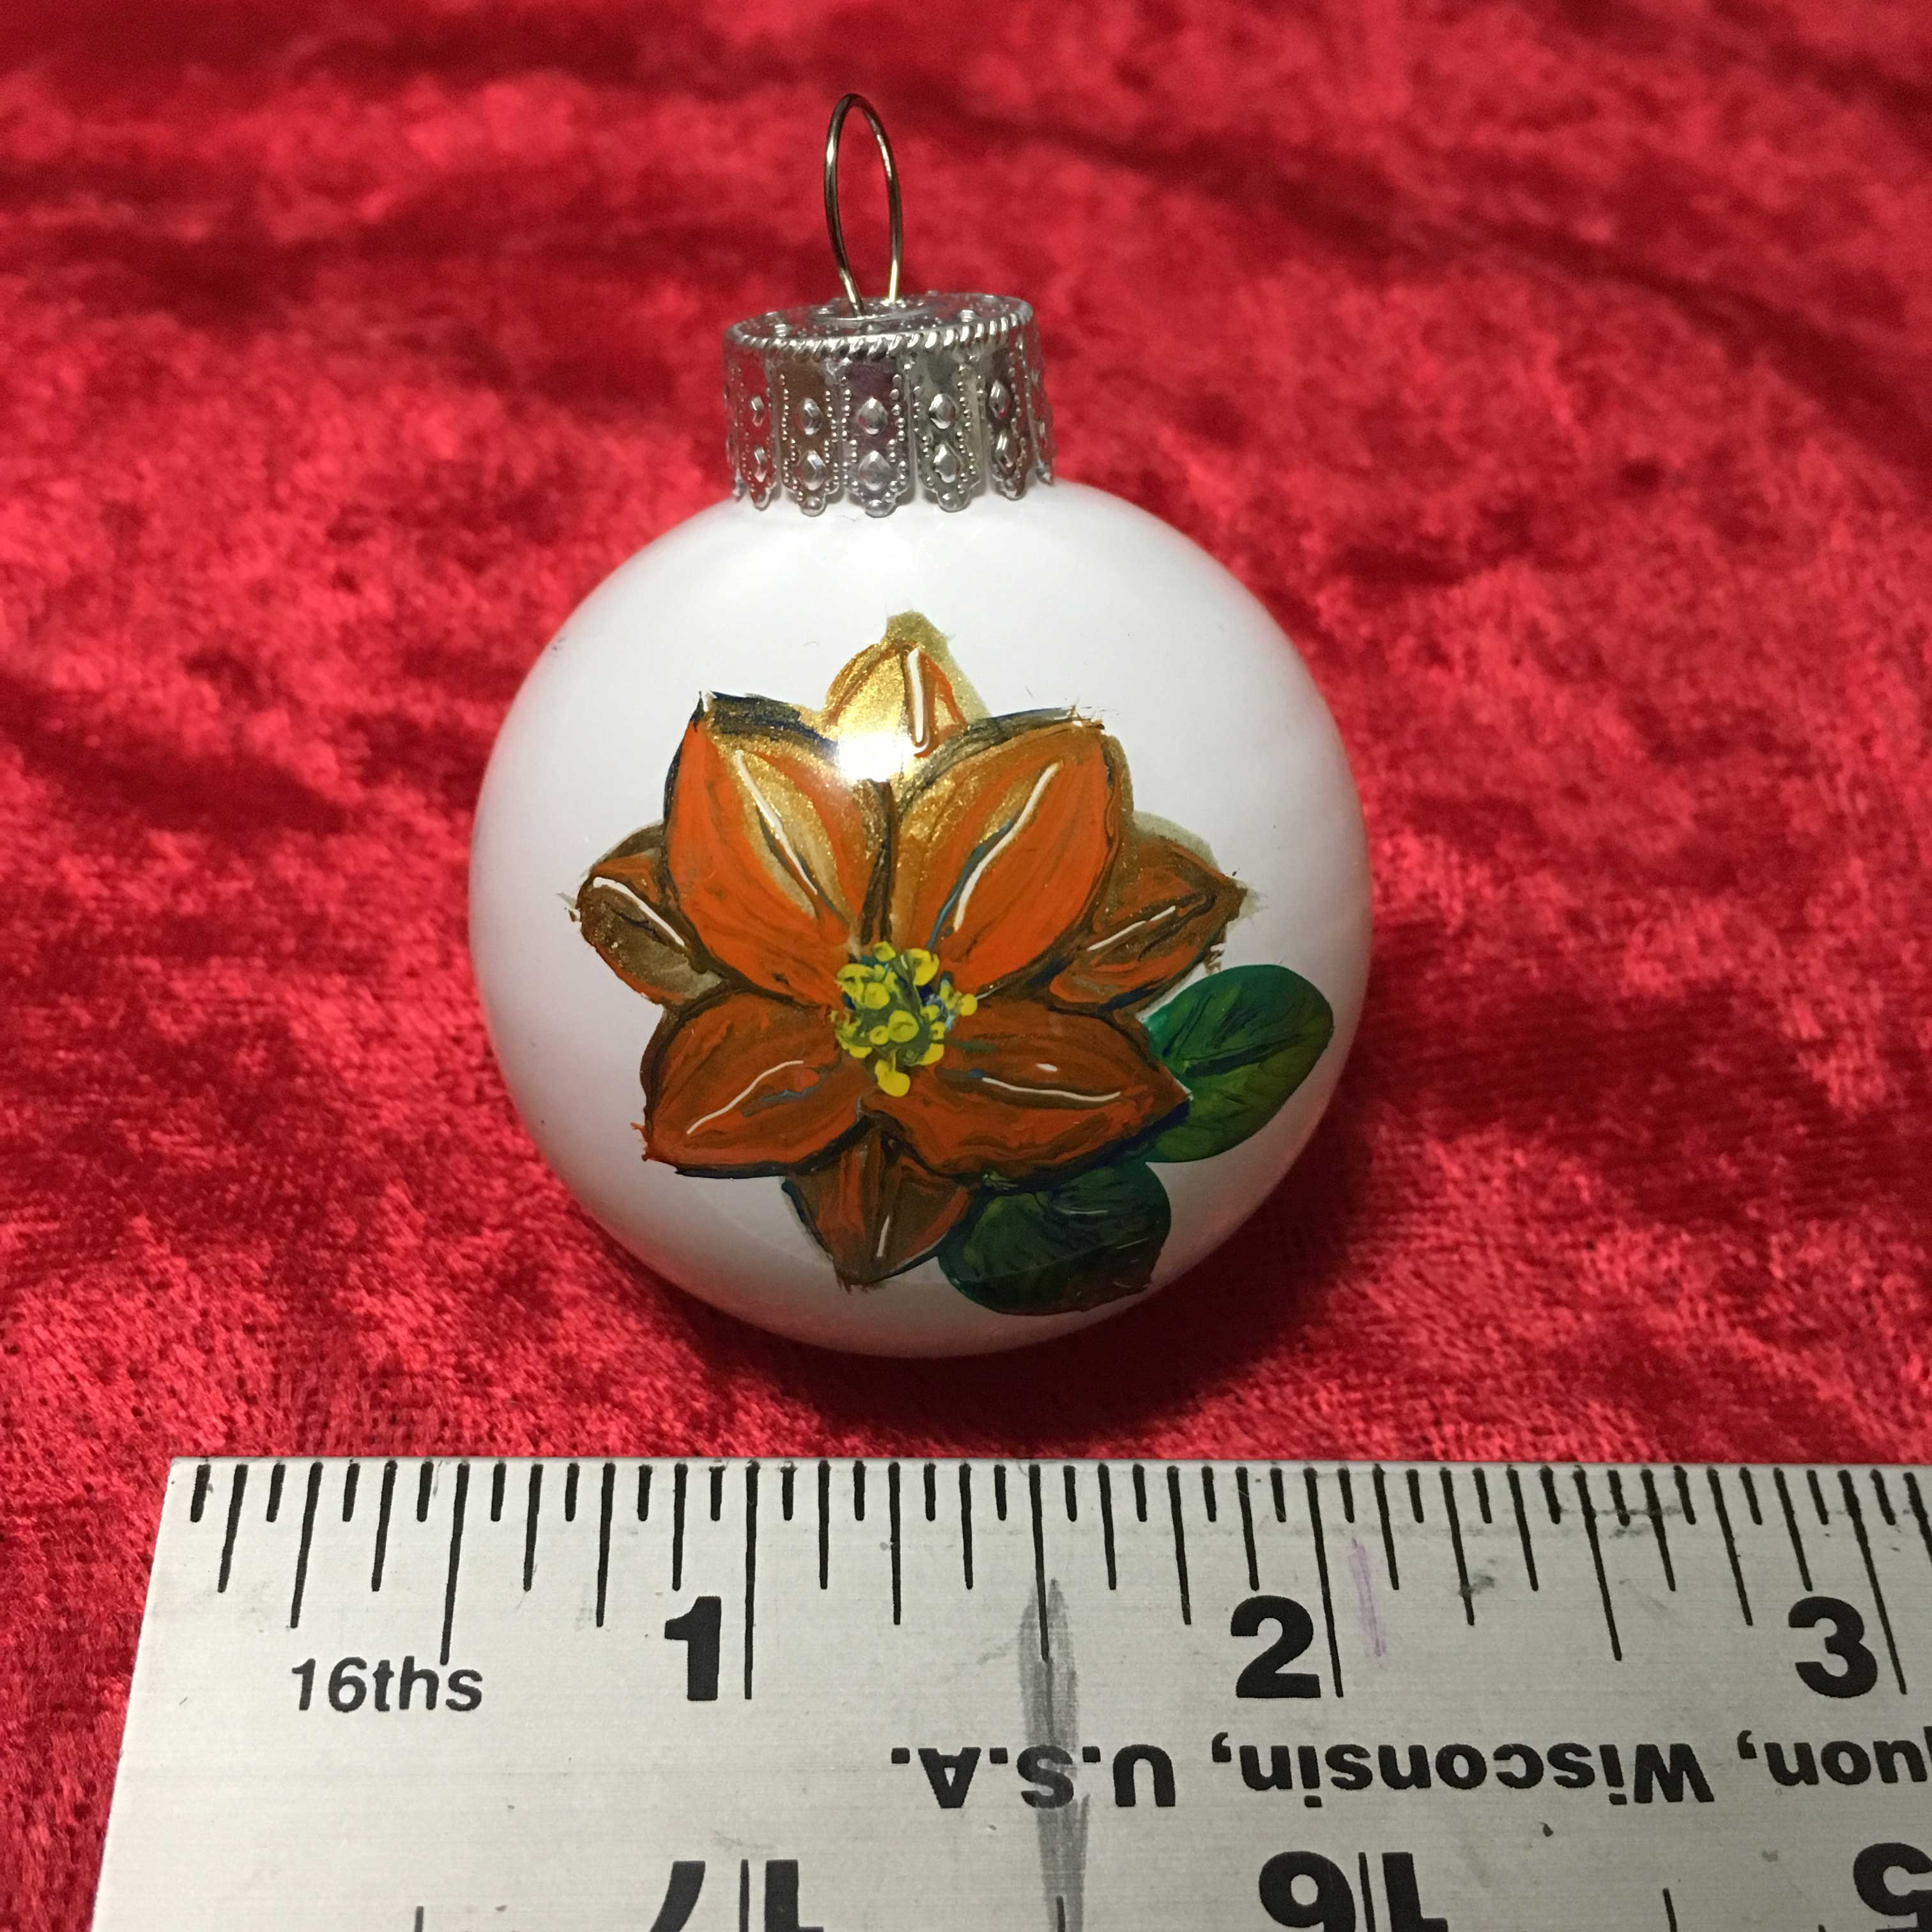 Orange Poinsettia ornament